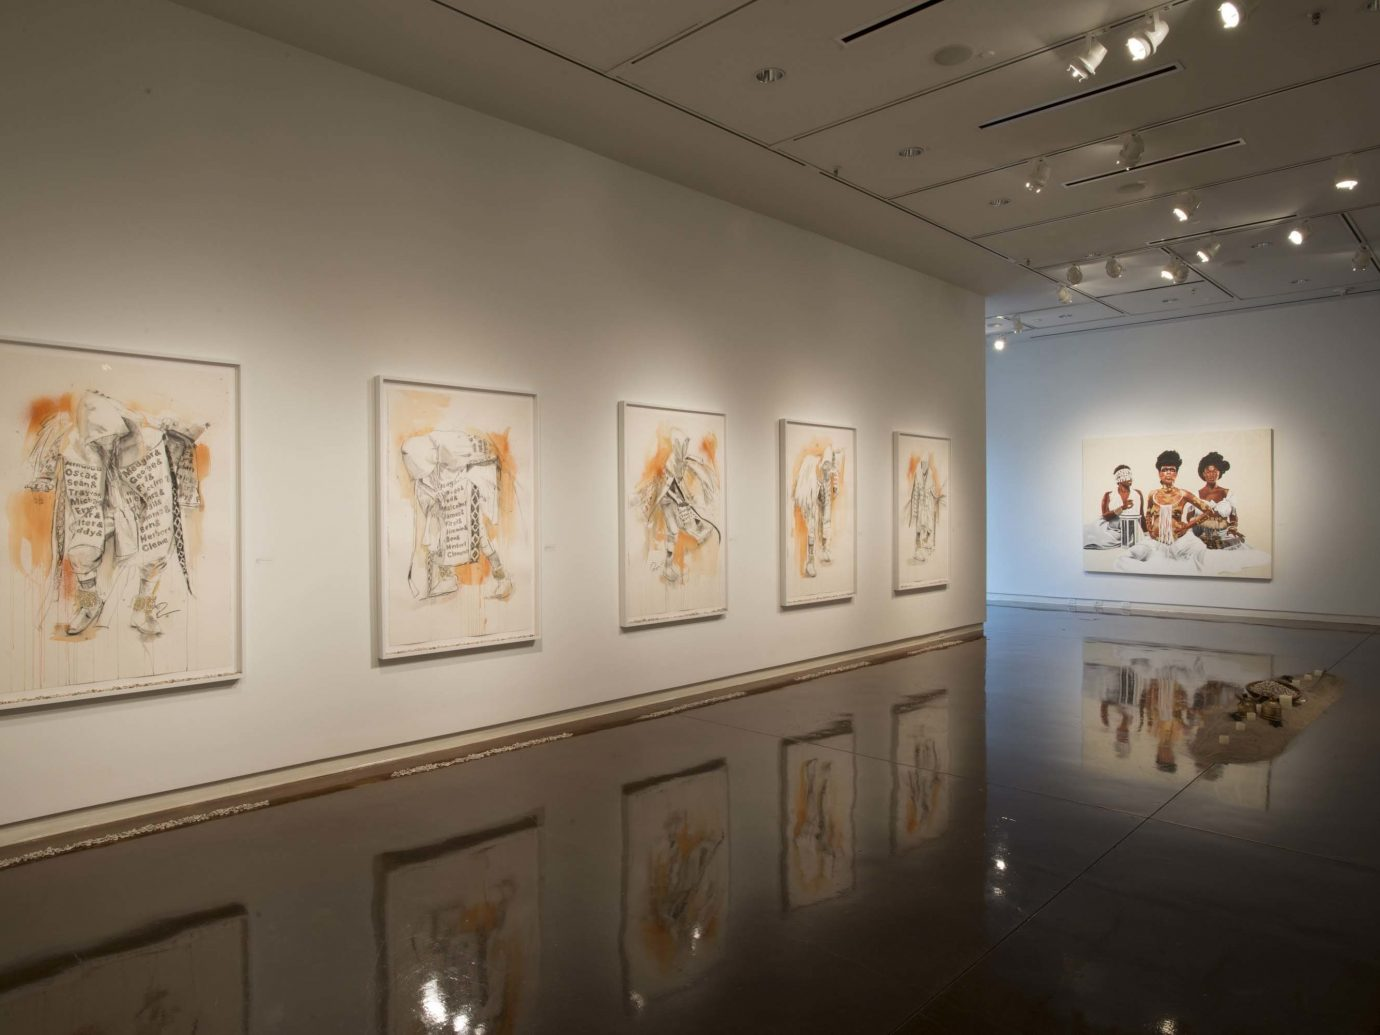 Galler display at The Halsey Institute of Contemporary Art